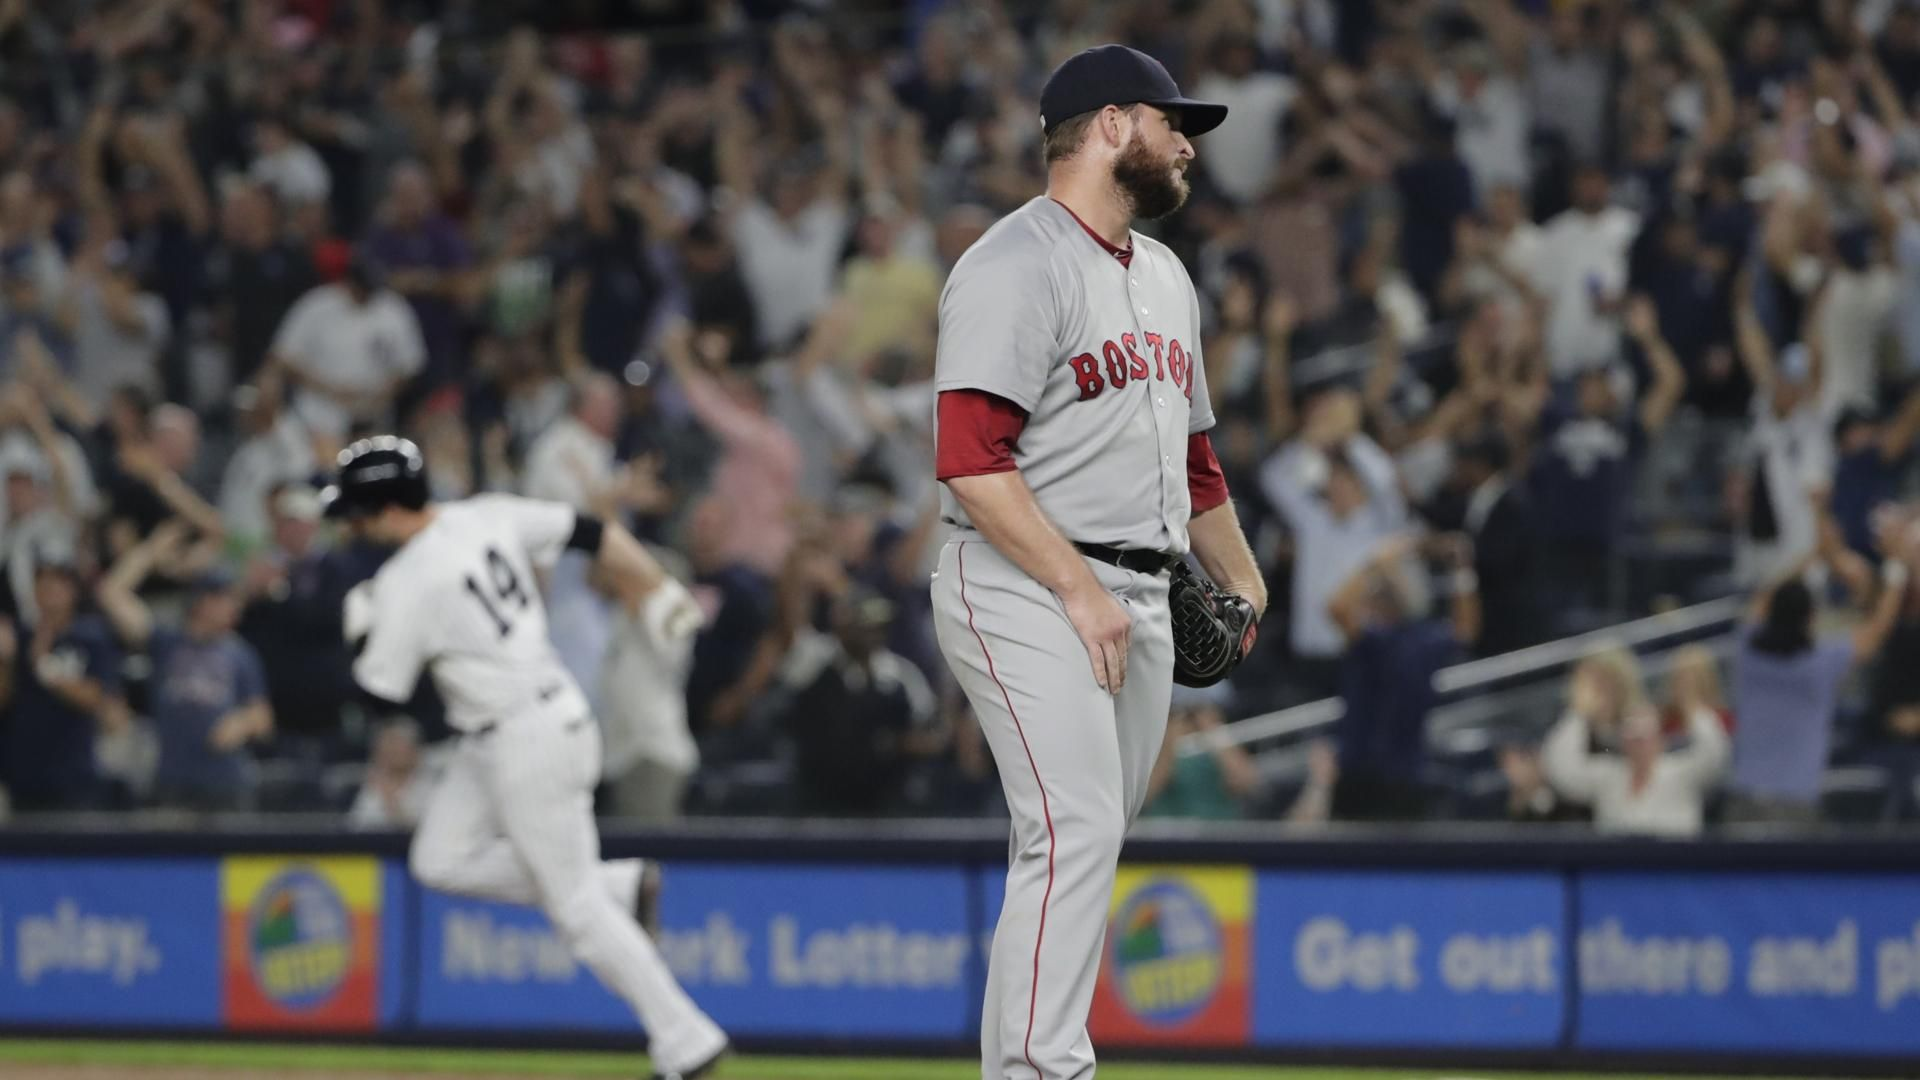 The Sox Need Just One Victory Against The Yankees To Clinch The American League East Title It May Take Price Handing A Lead To Closer Cr Boston Red Sox Red Sox